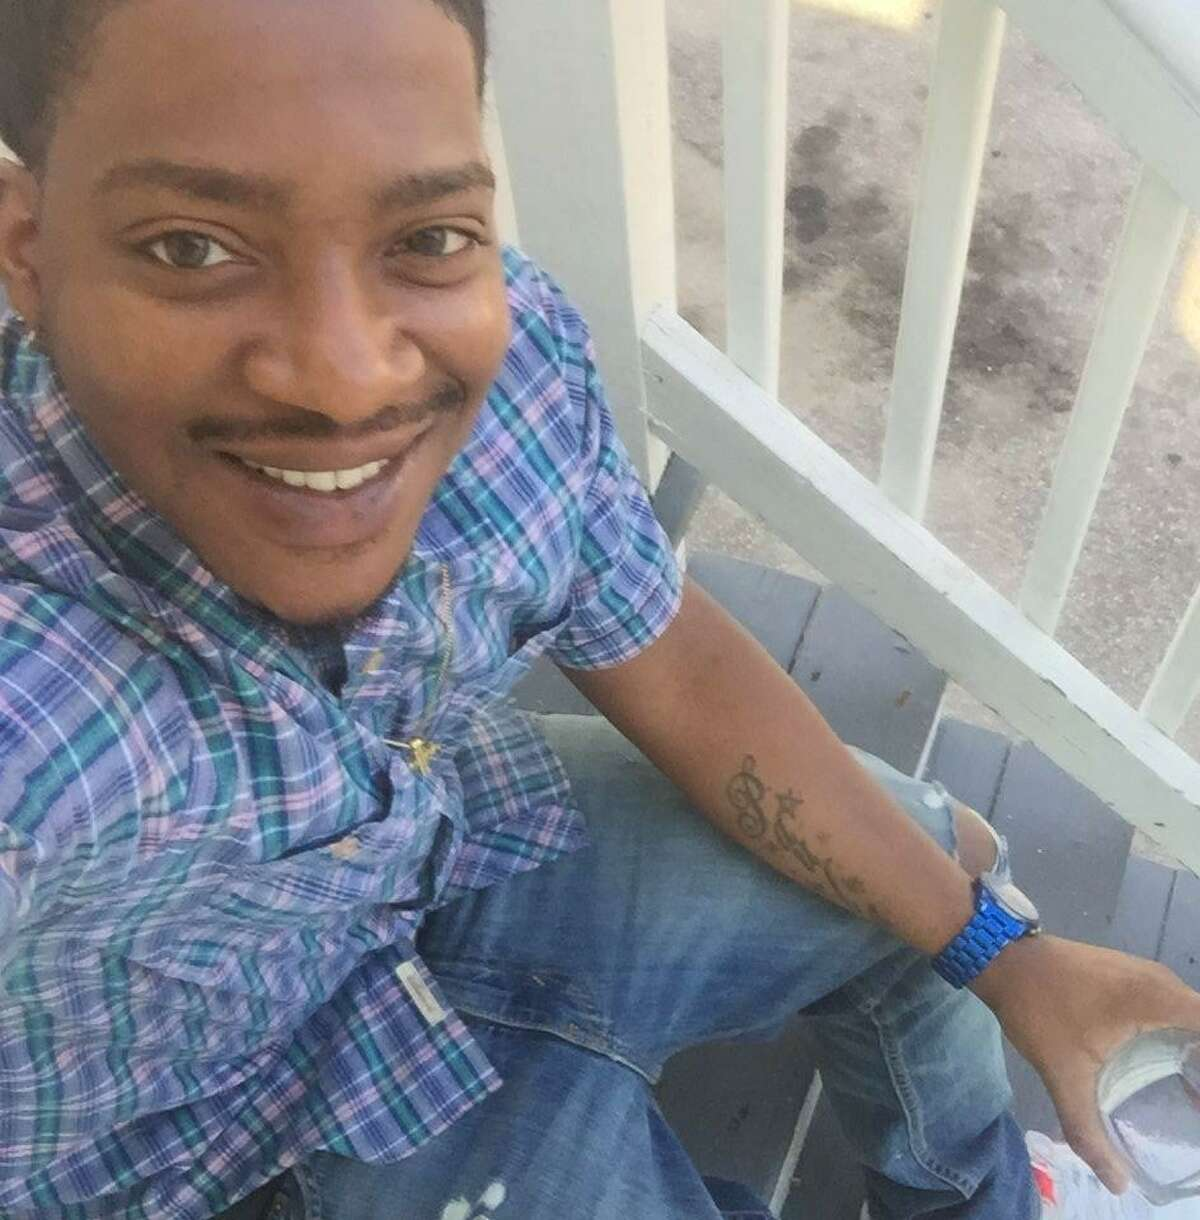 The family of a 29-year-old Stamford man last seen in Nashua, N.H., is asking the public's help to locate him. Mike McClain, who was born in raised in Stamford, graduated from Stamford High in 2008.